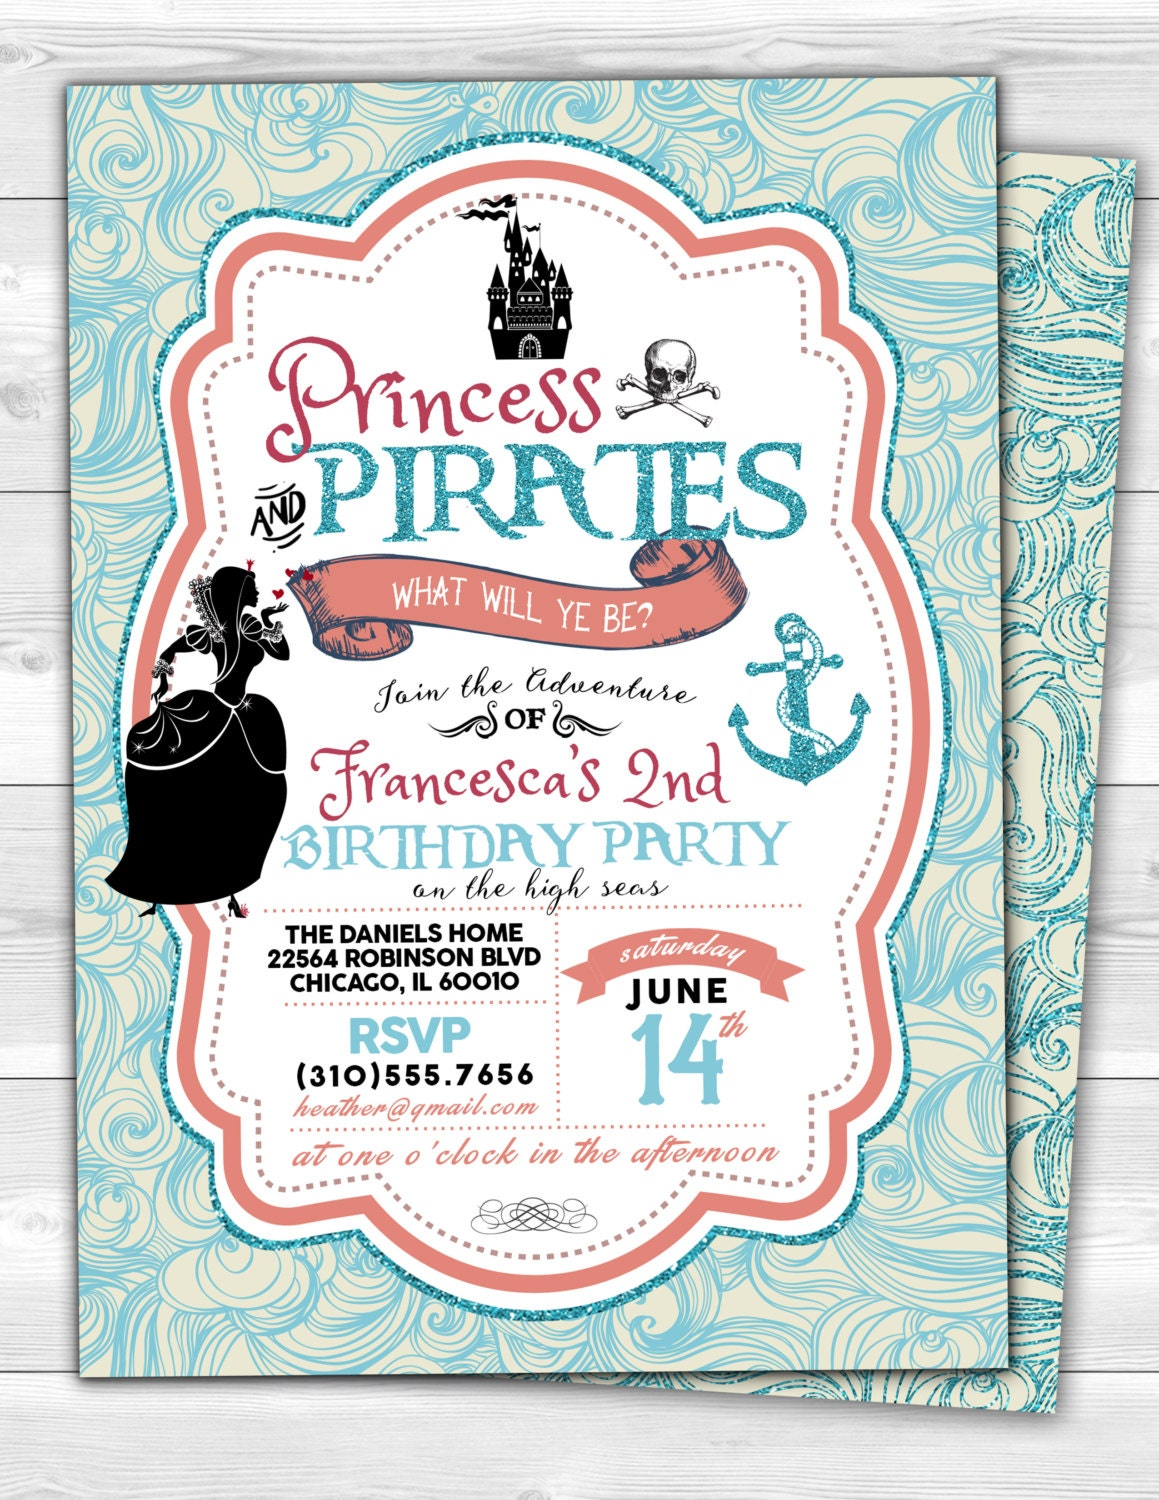 The pictures for --> Pirate Princess Party Invitations